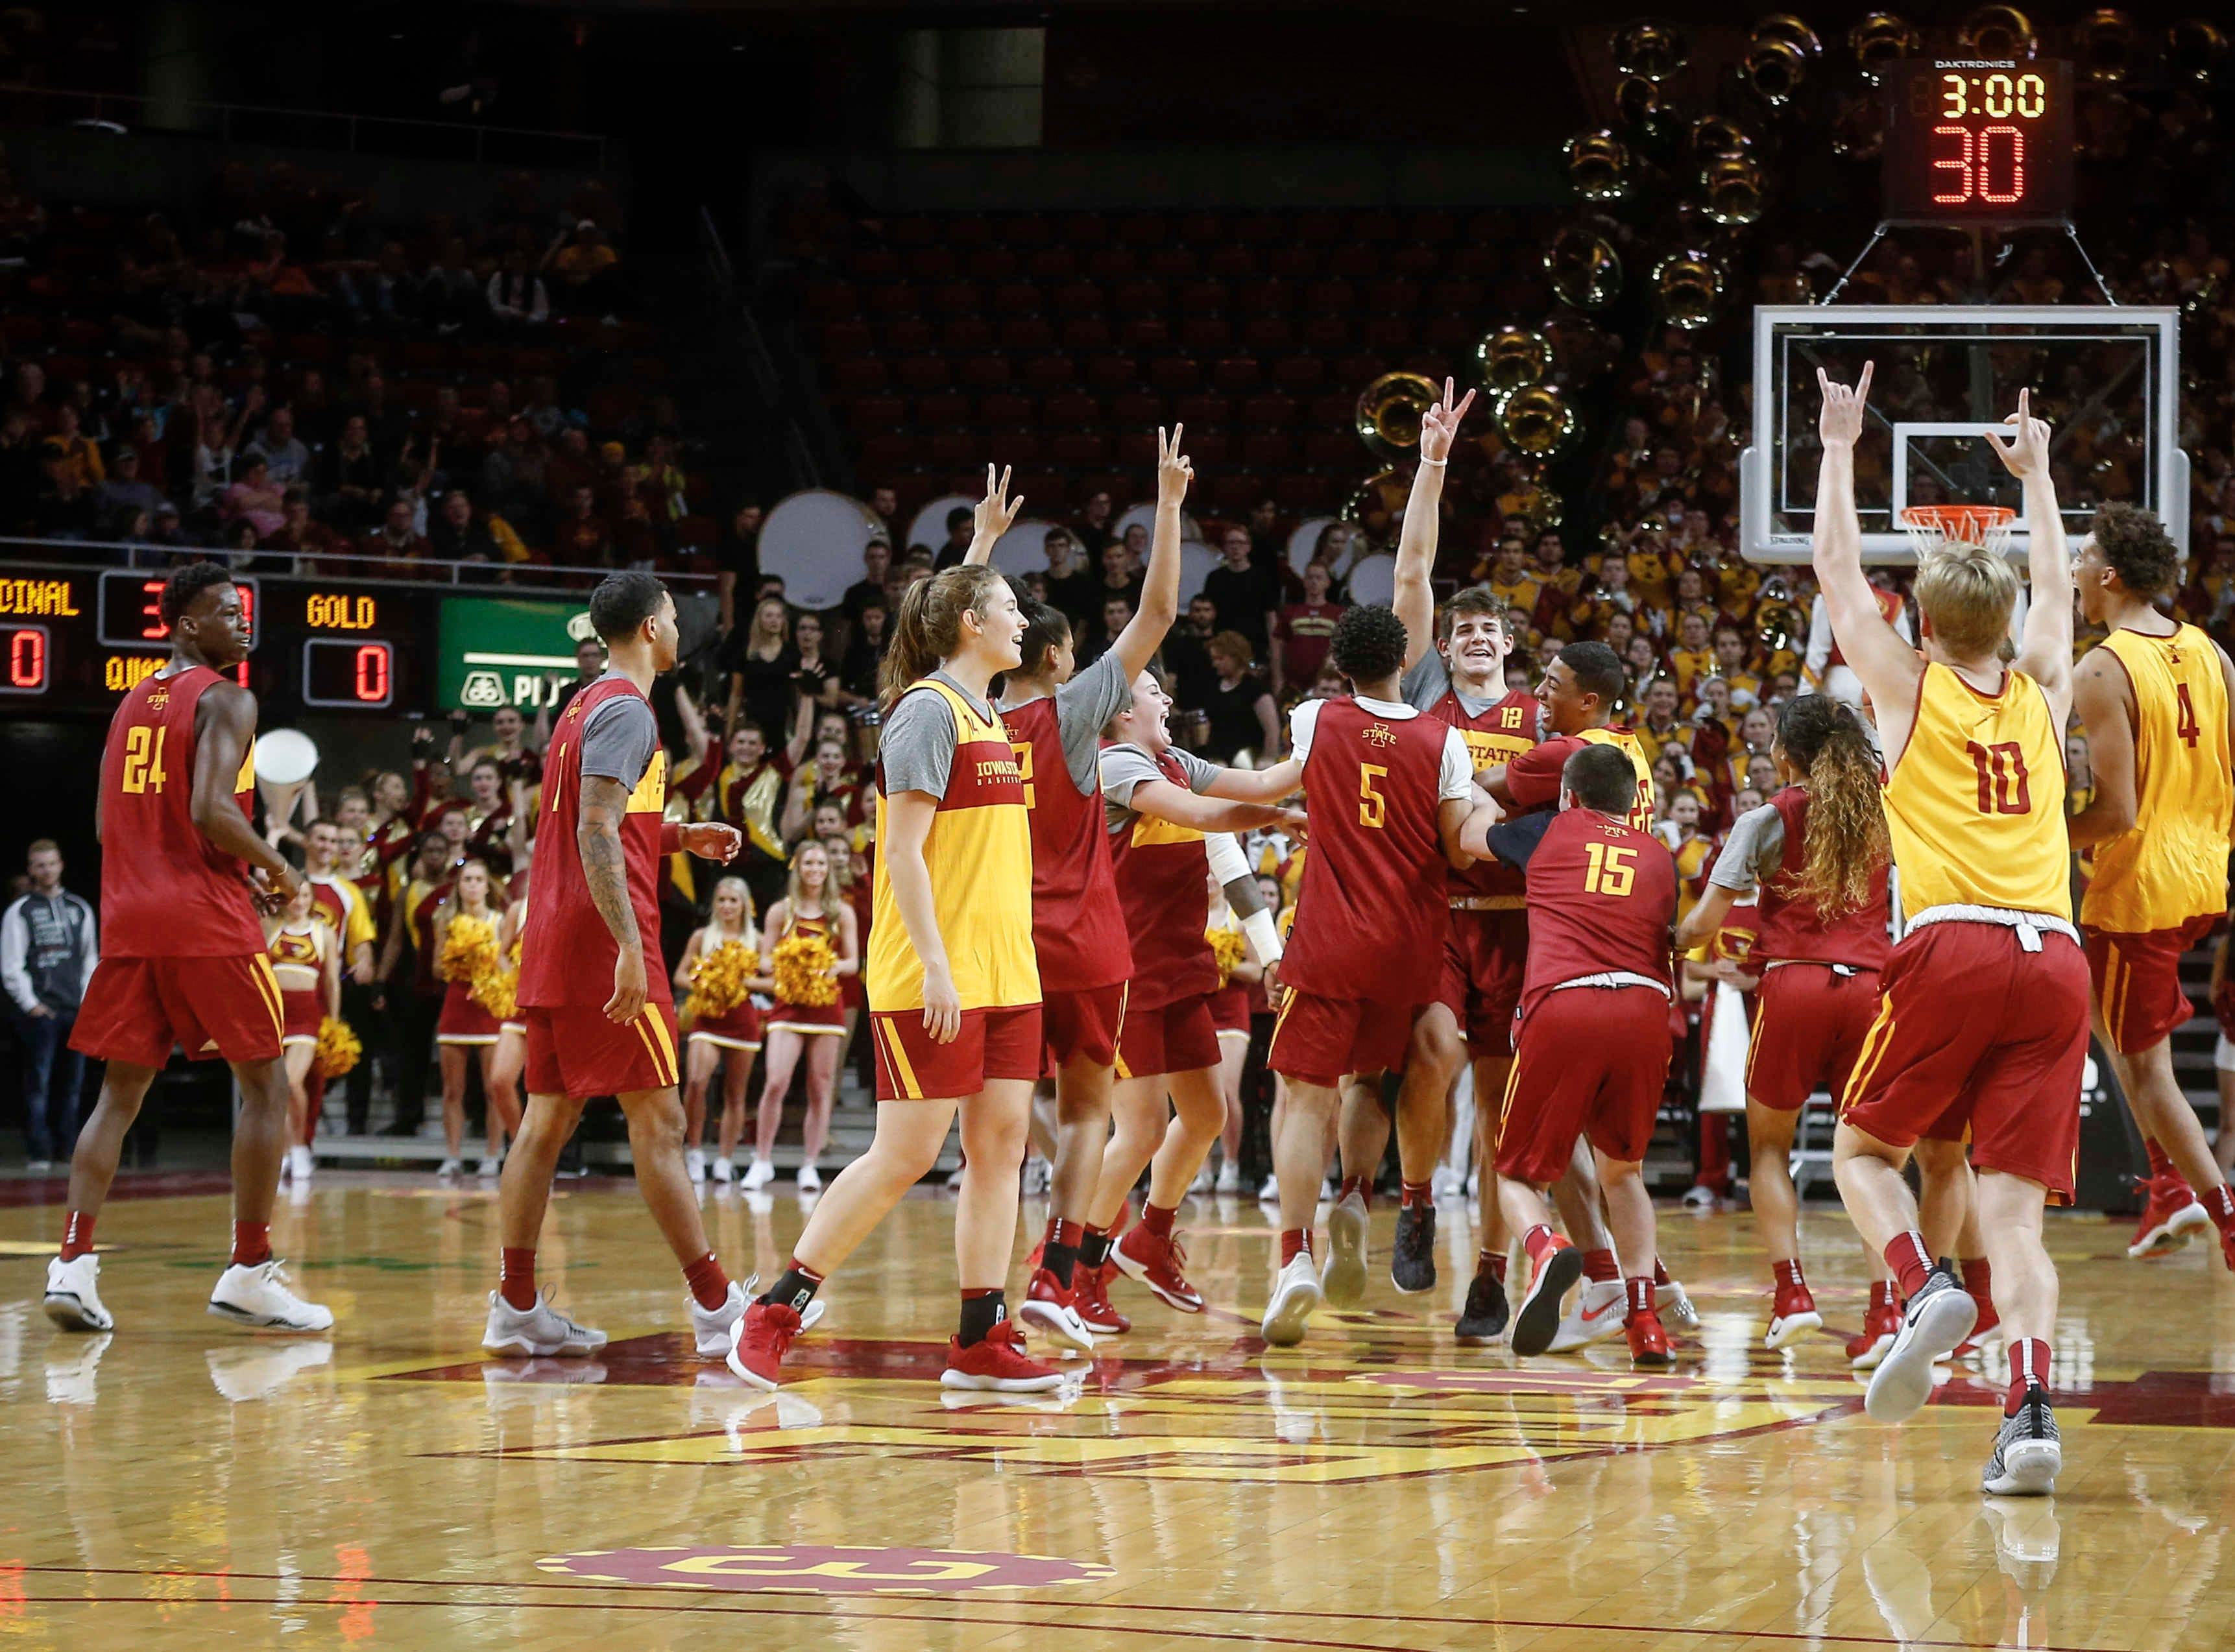 Iowa State players celebrate after the shootout competition during Hilton Madness at Hilton Coliseum in Ames on Friday, Oct. 12, 2018.